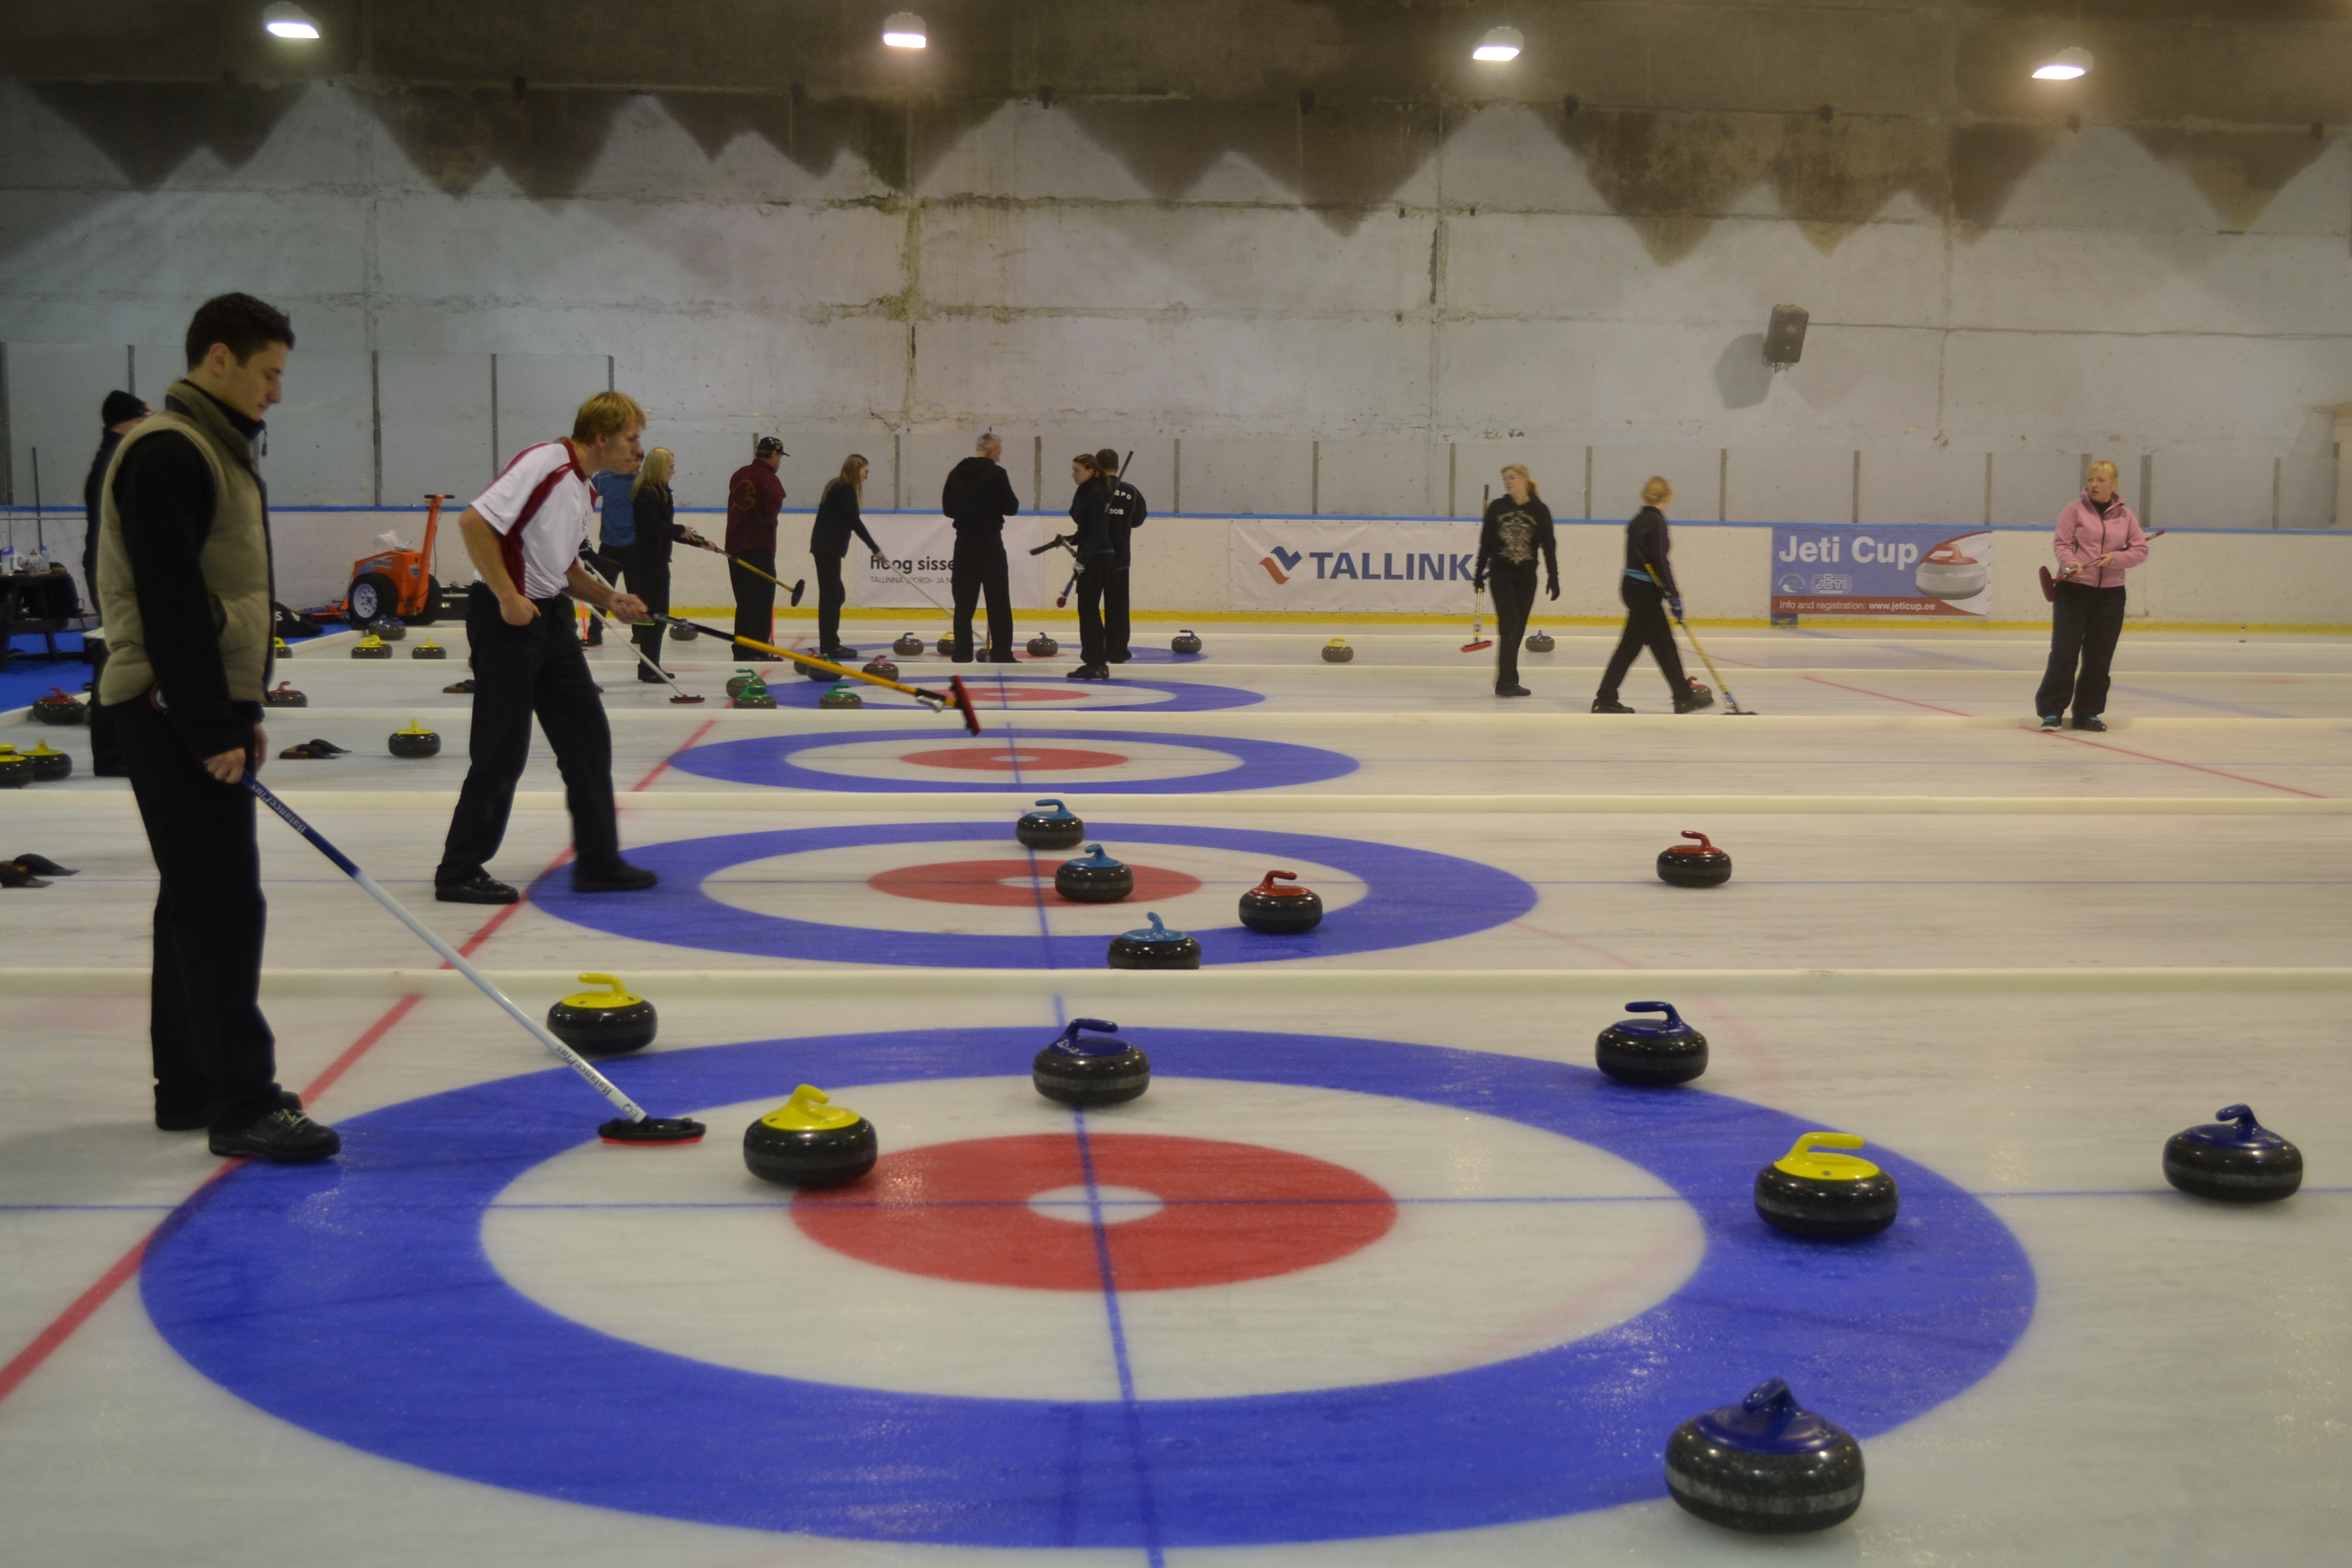 41f021caf37 Curling | Activities & Adventures in Tallinn